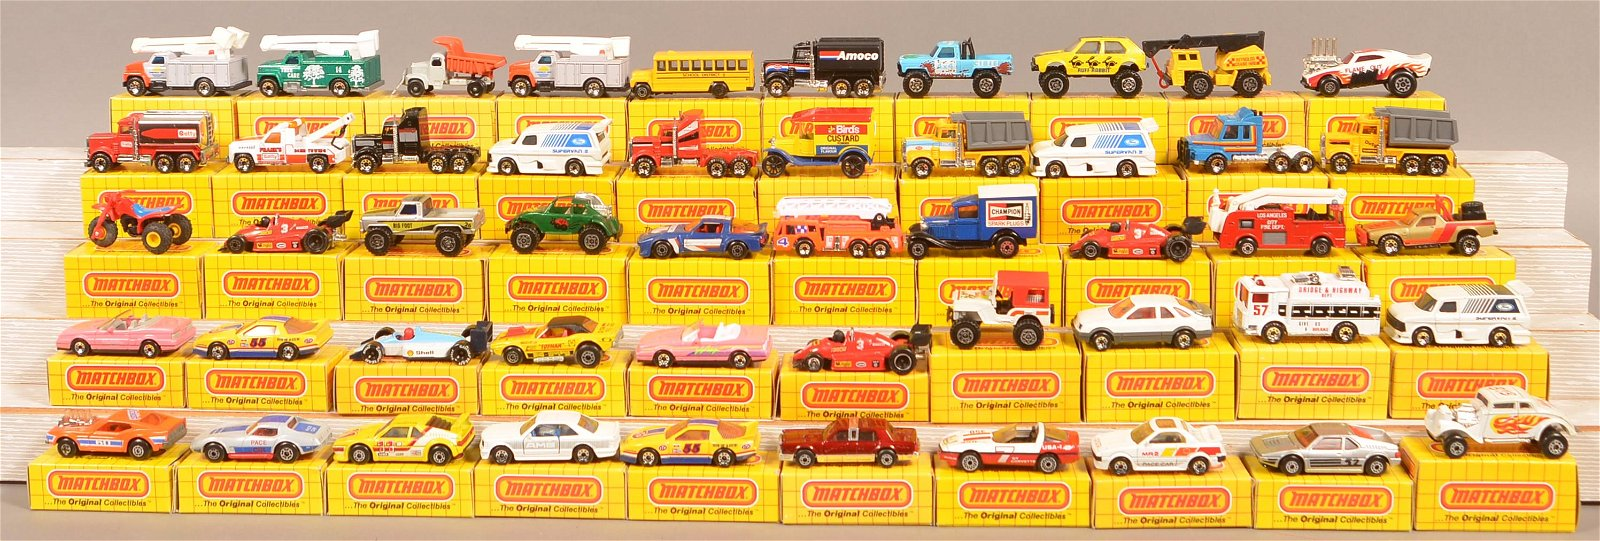 Lot of 50 Matchbox Vehicles in Boxes.